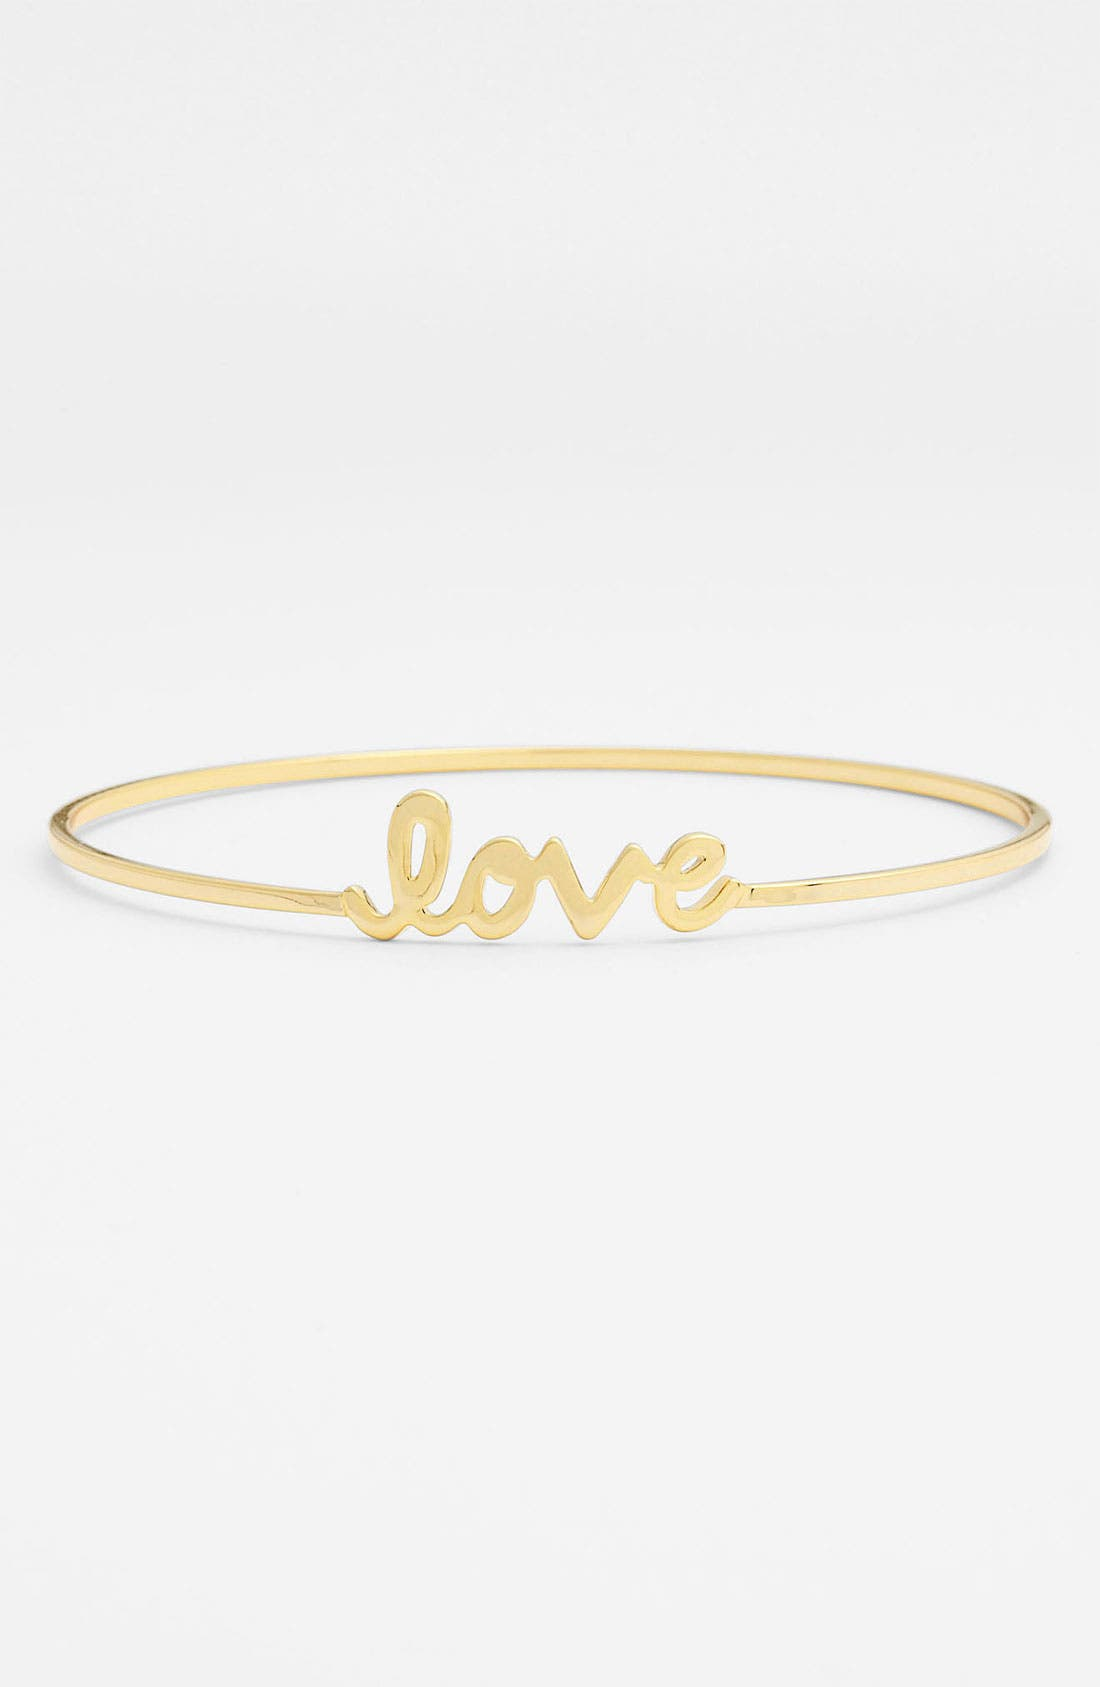 Alternate Image 1 Selected - Ariella Collection 'Messages - Love' Script Station Bangle